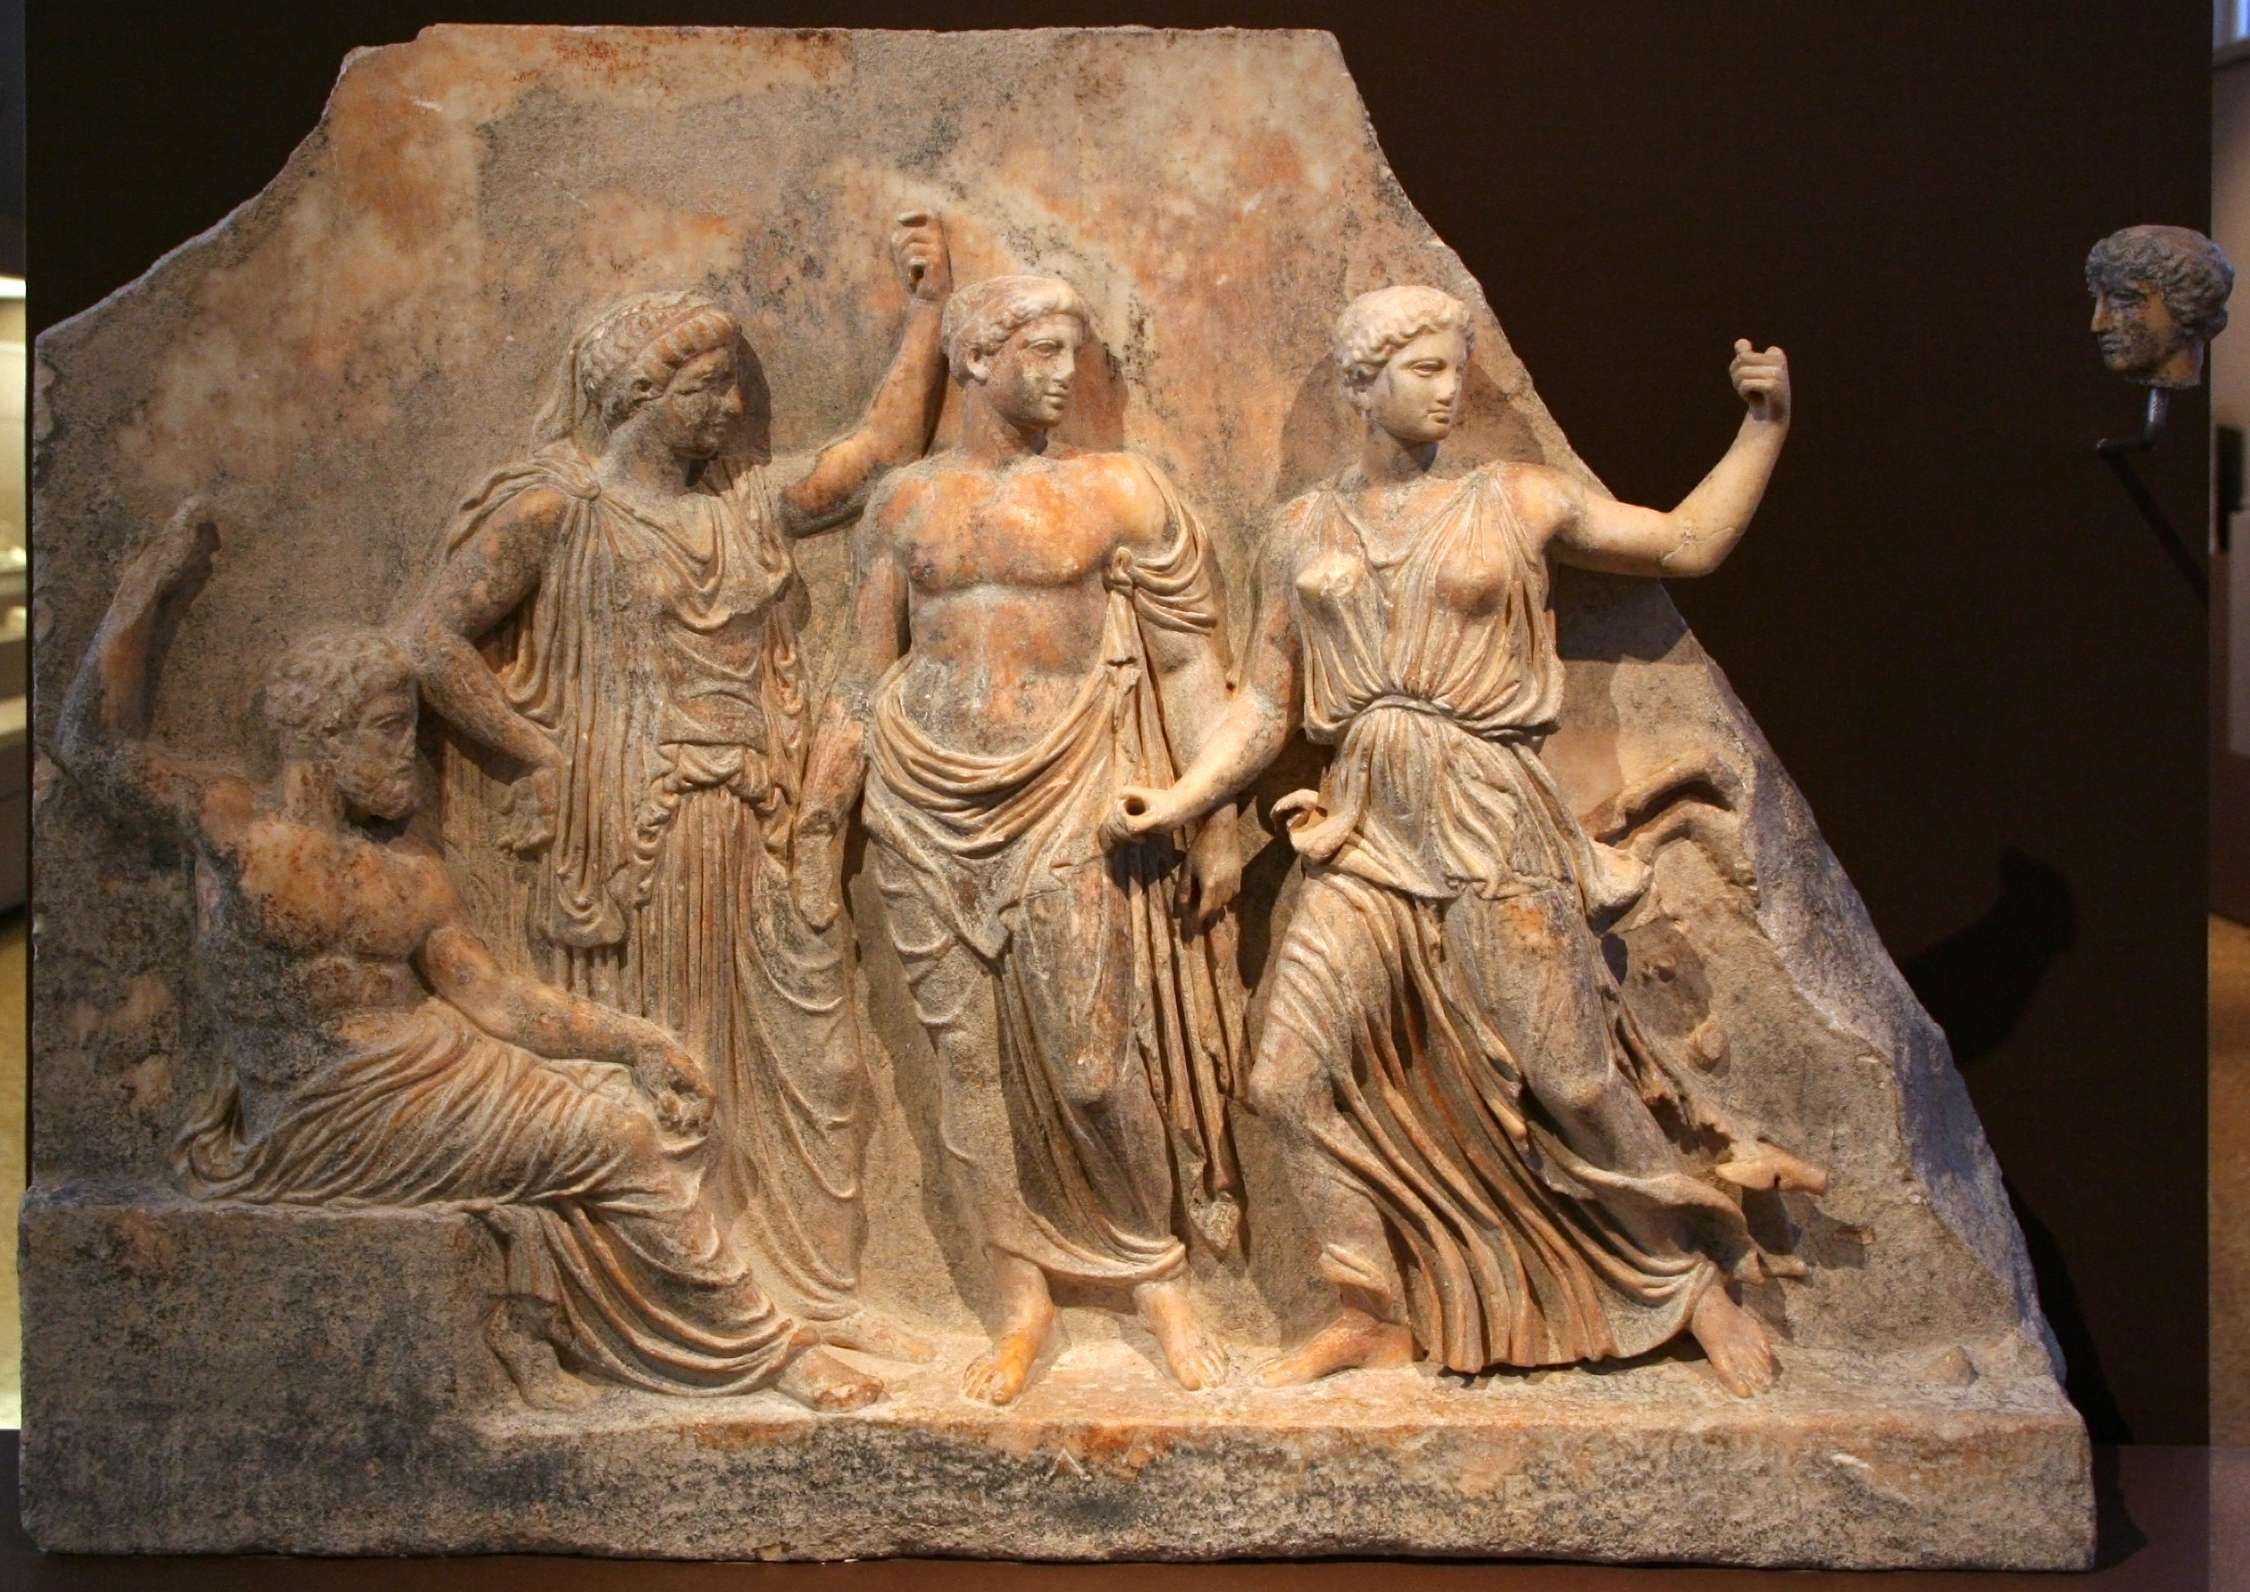 Ανάγλυφο με τον θεό Δία και τη Λητώ. A relief showing Zeus and Leto with their offspring Apollo and Artemis to the right. 420-410 BCE. (Archaeological Museum of Brauron, Greece)